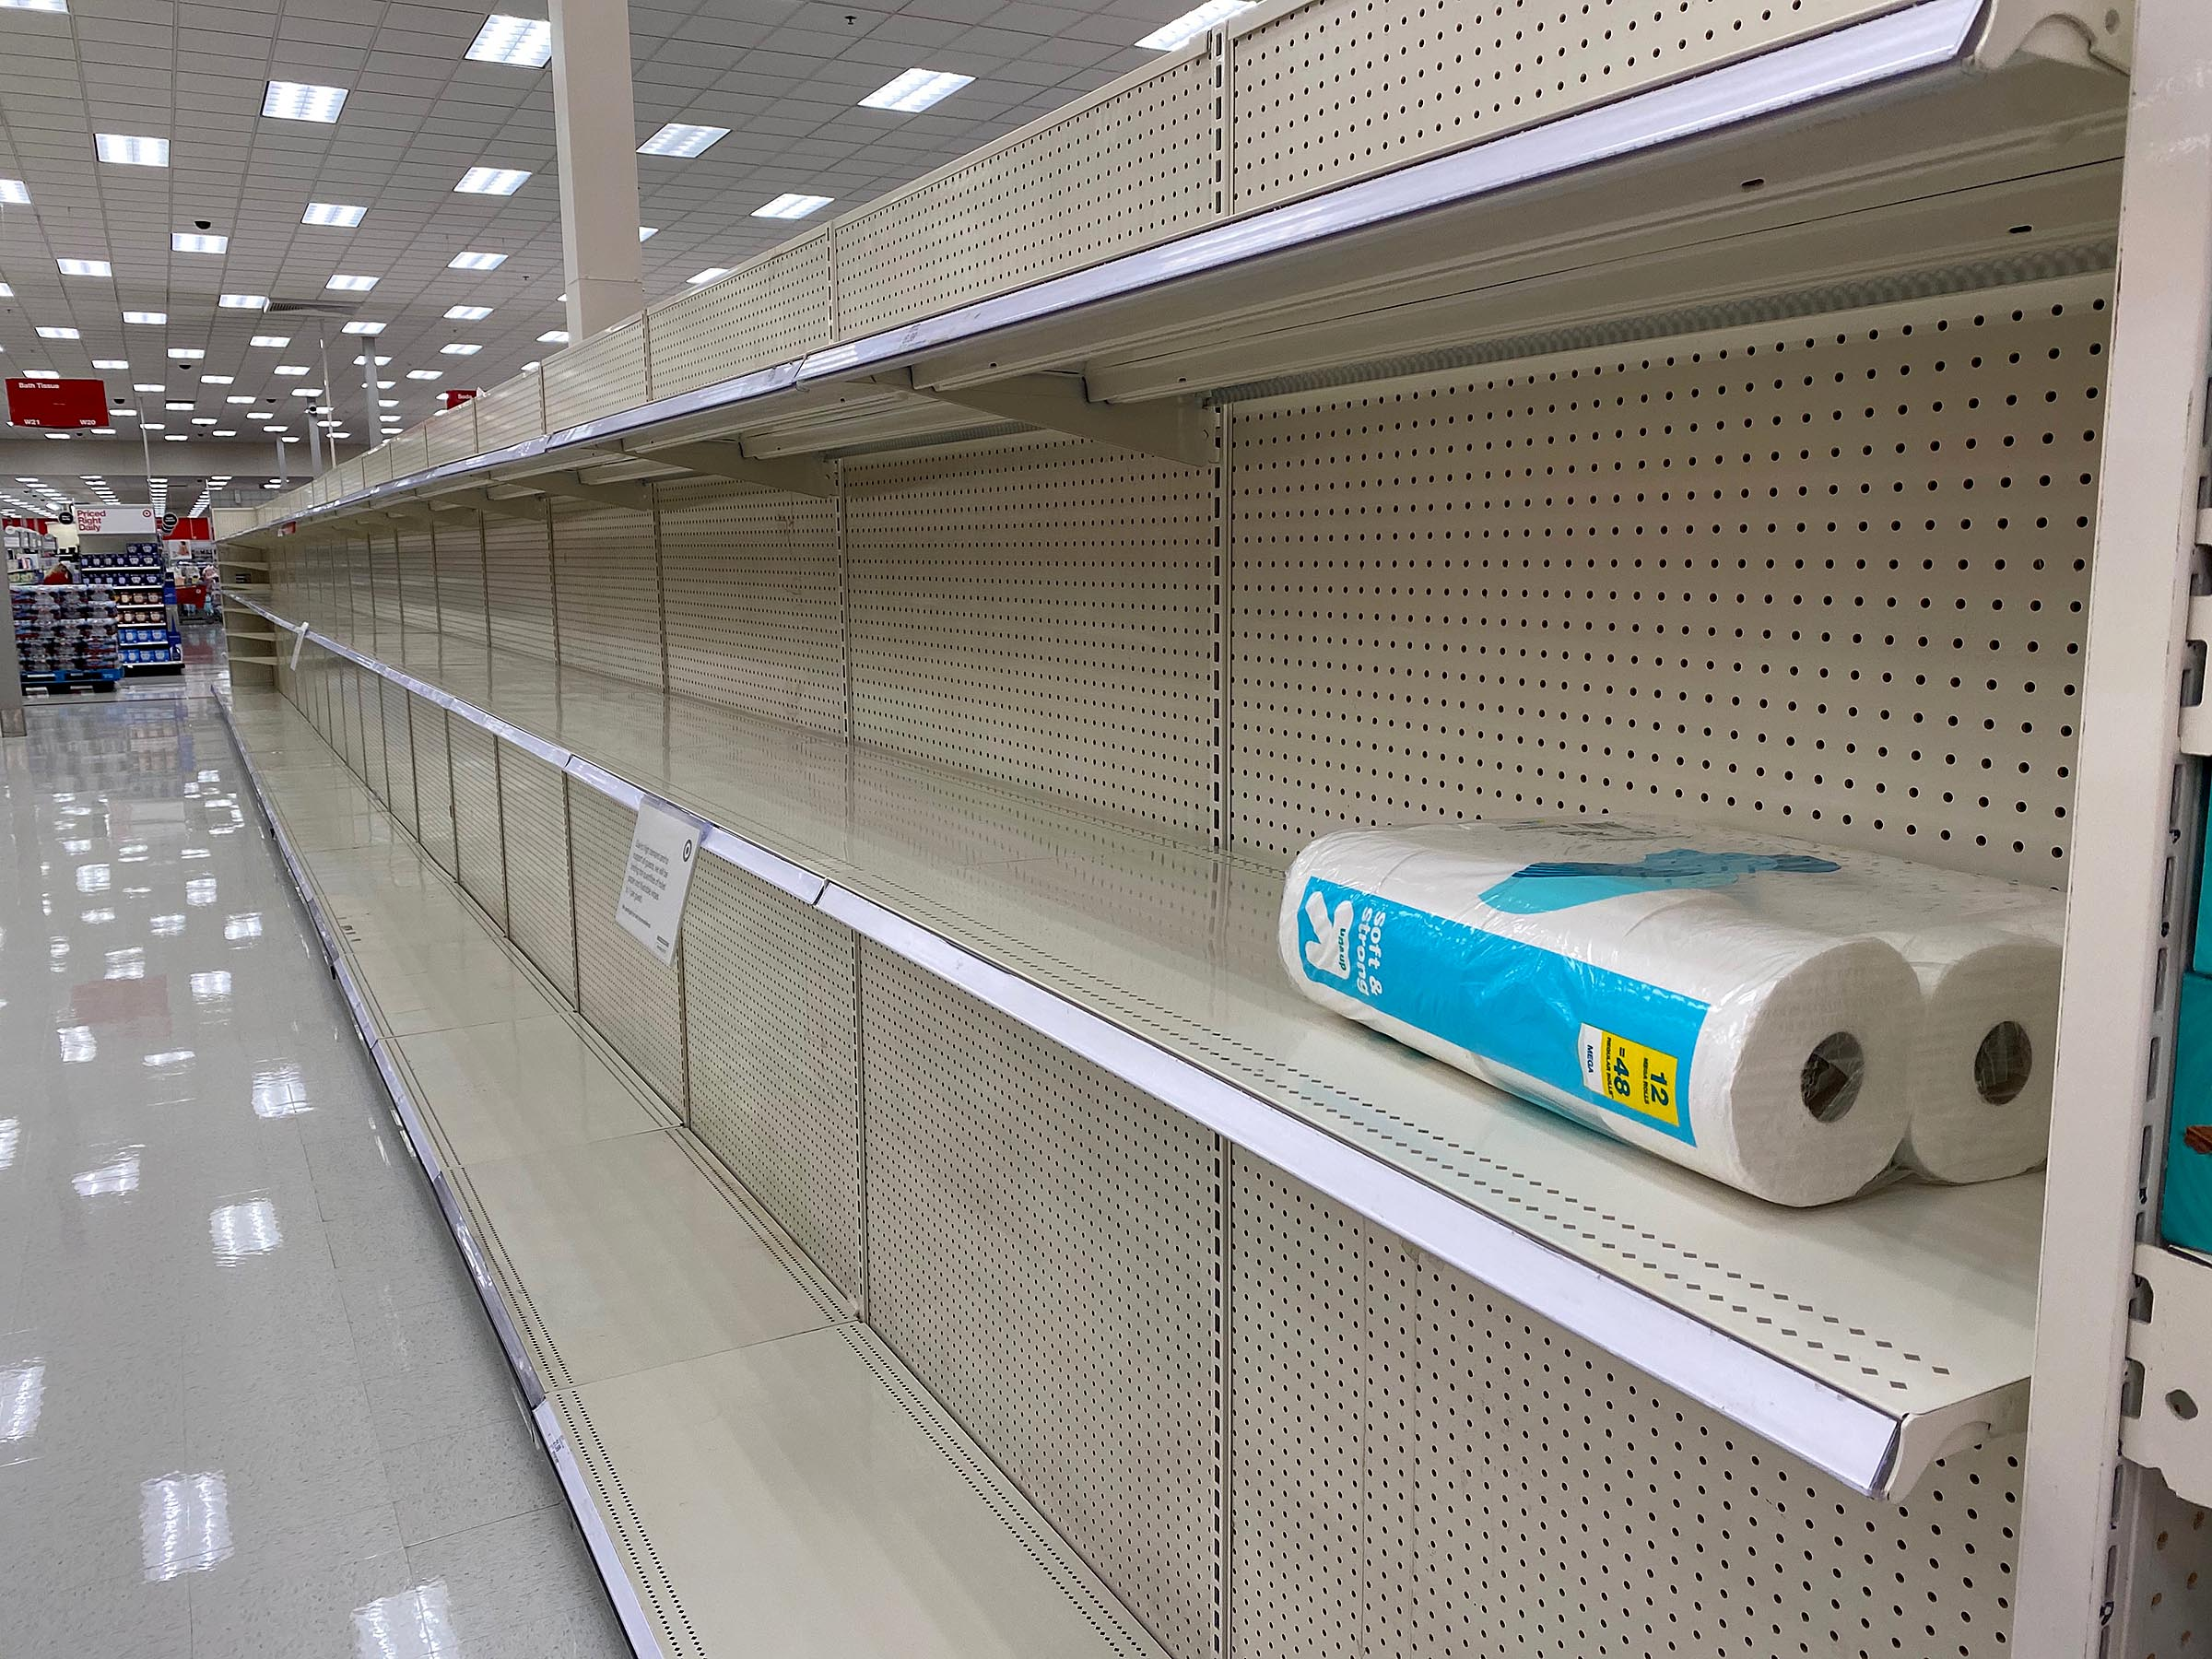 A single package of toilet paper is all that remains on shelves at a Target in Sandy on Tuesday April 14, 2020. Grocery and warehouse stores are hoping to avoid the hoarding of certain household items that took place last spring.